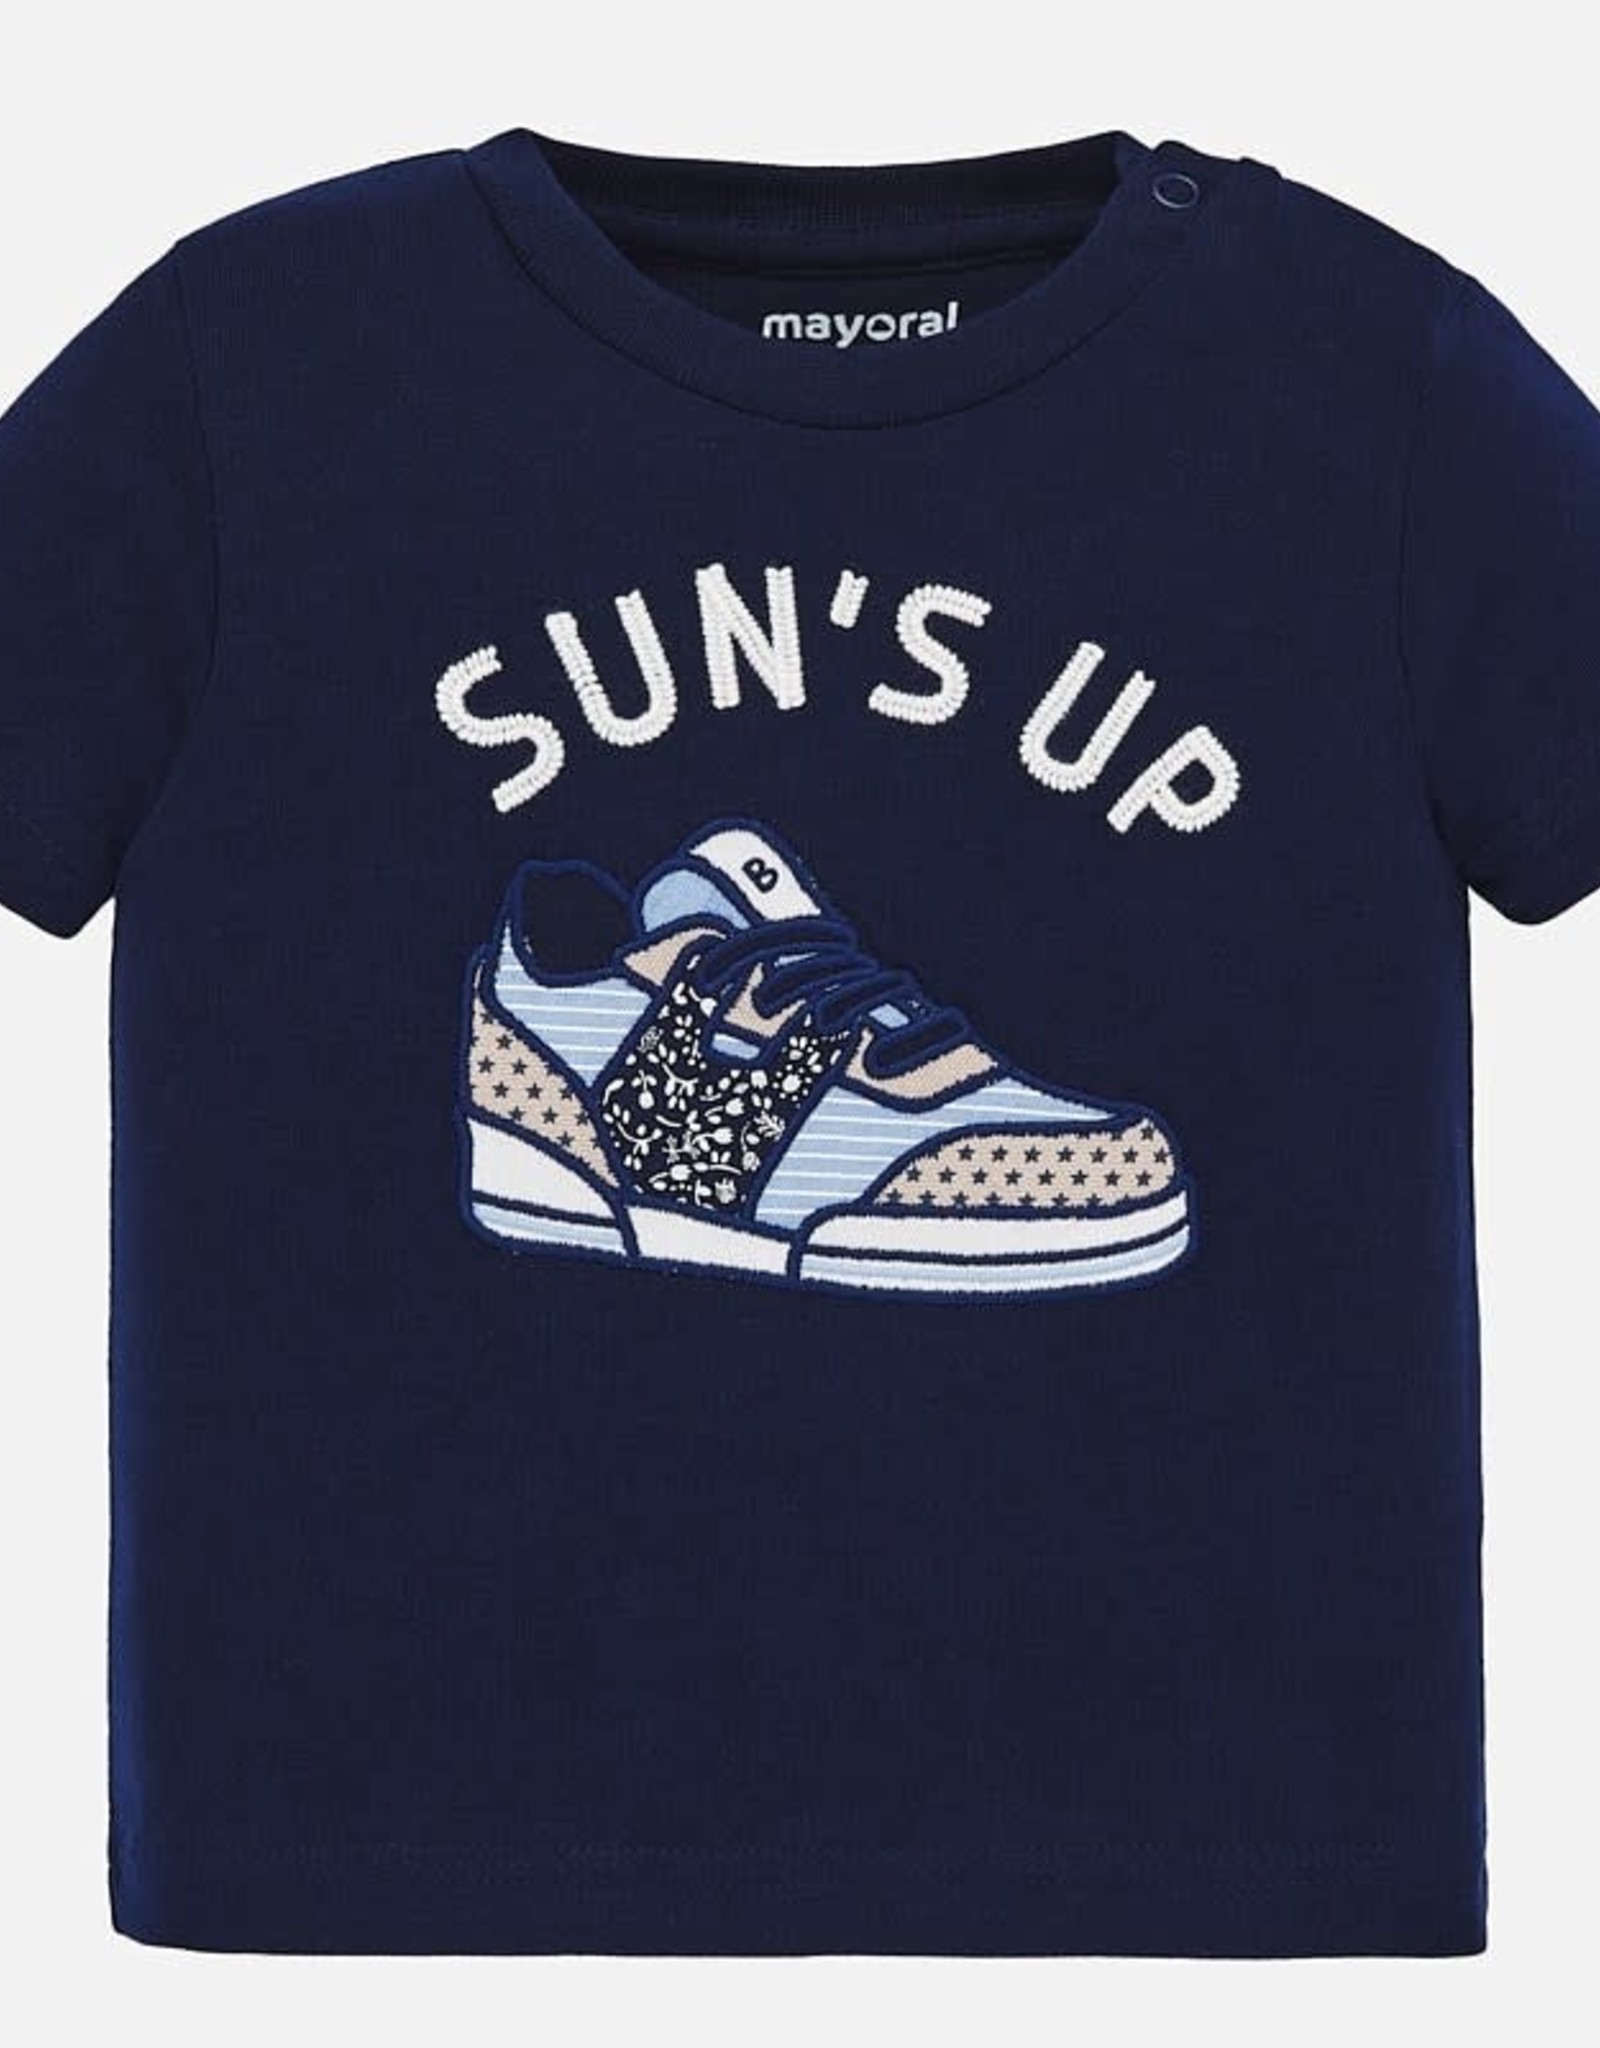 Mayoral Sneaker T-Shirt - Navy